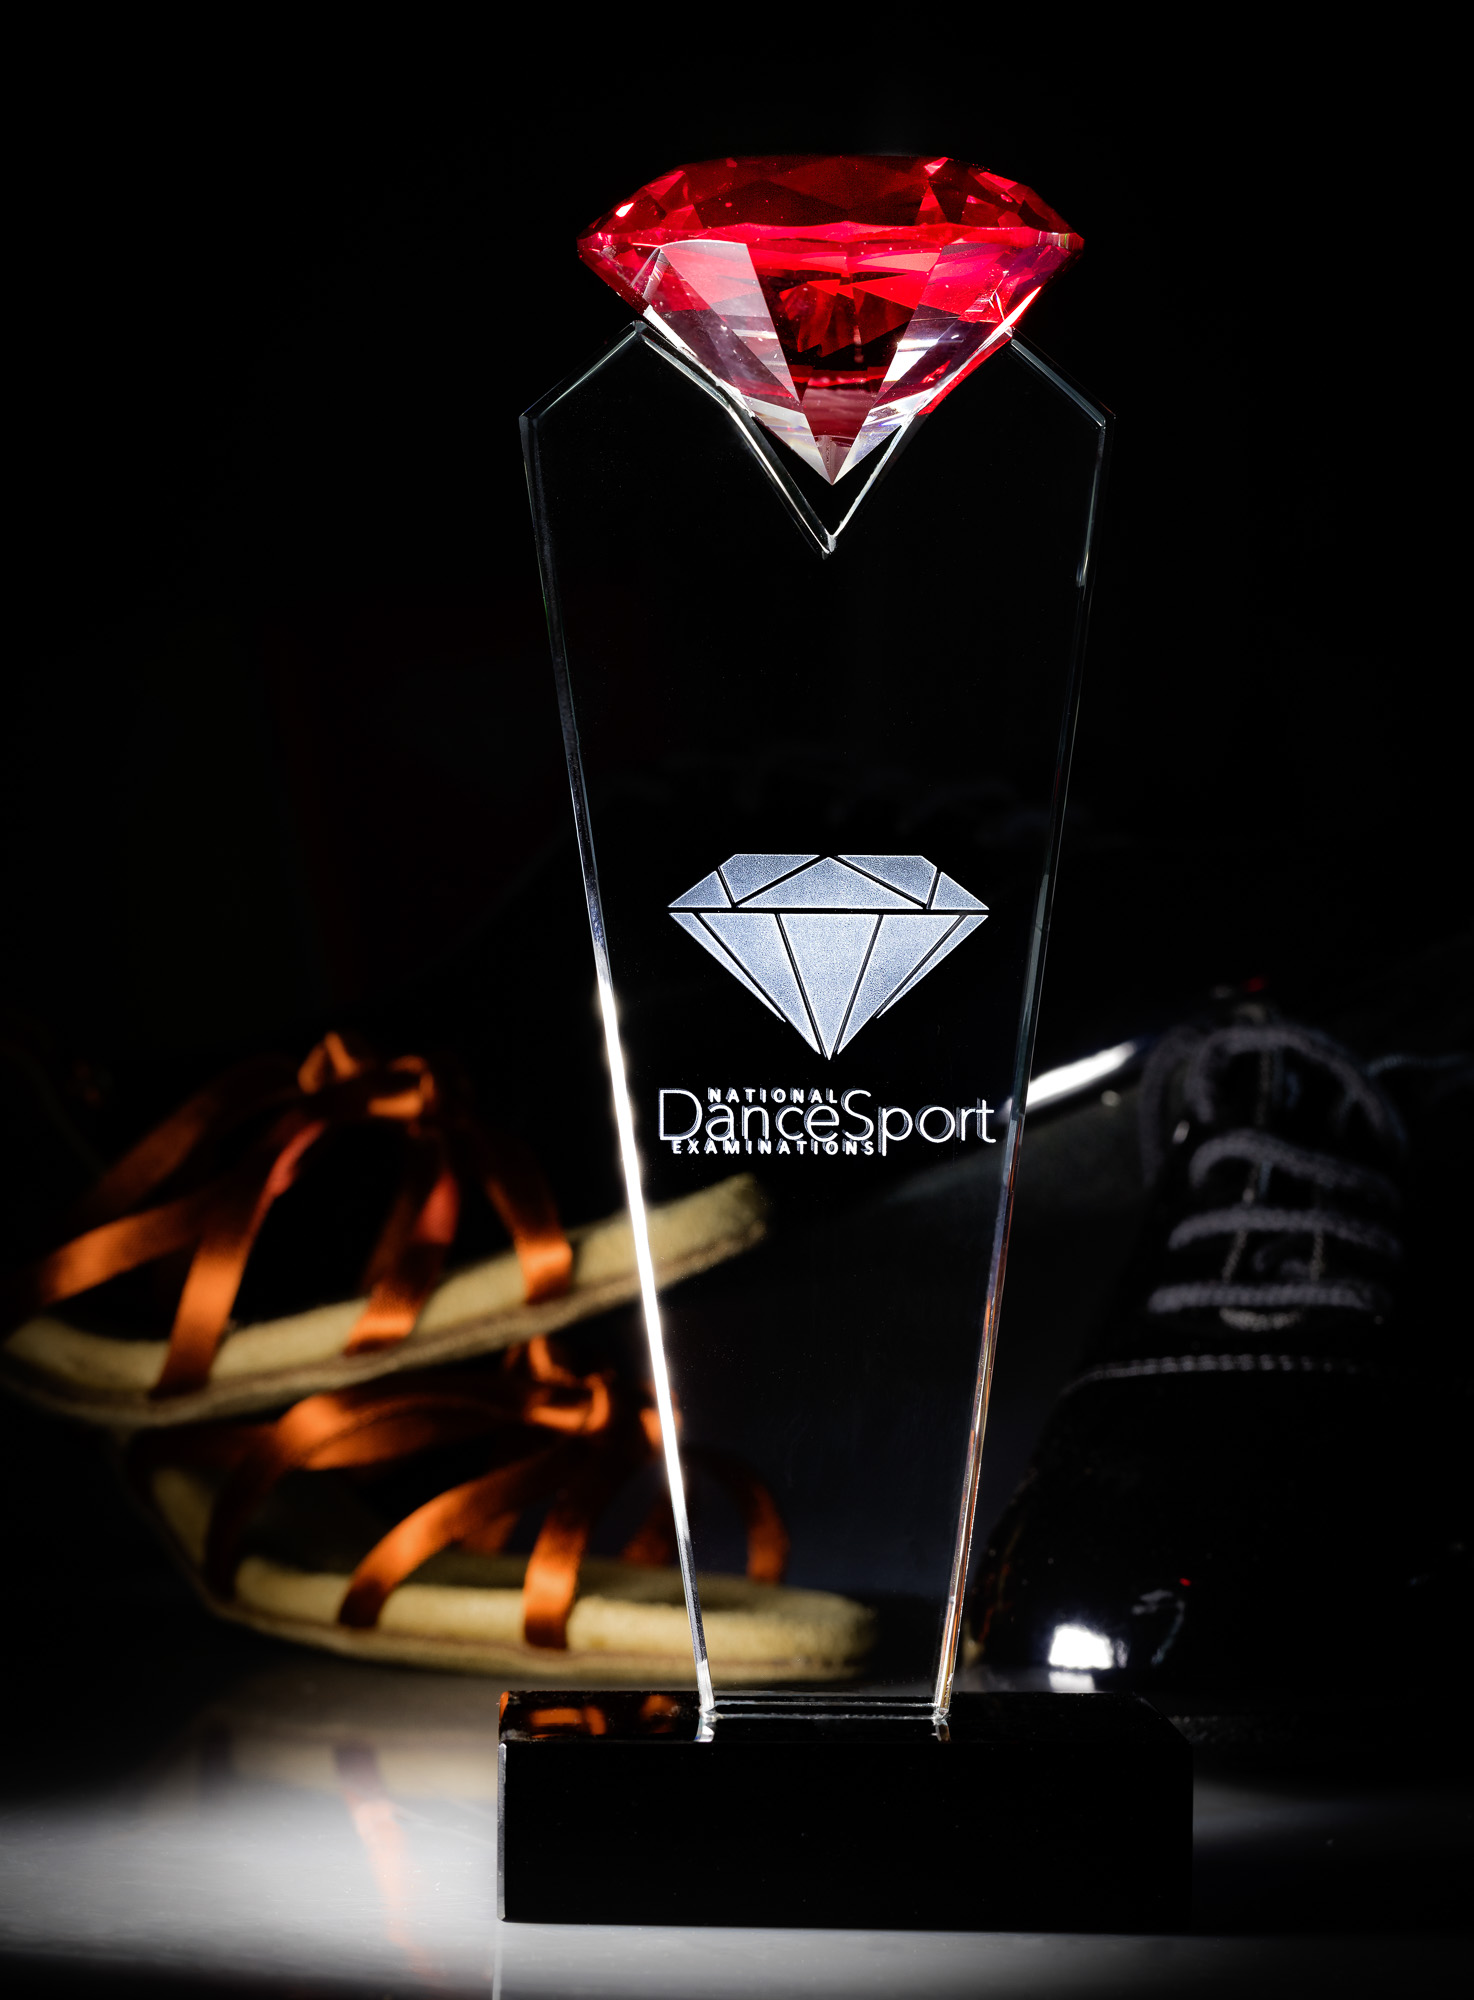 Lifestyle product photography of dancing medal and plate - red trophy